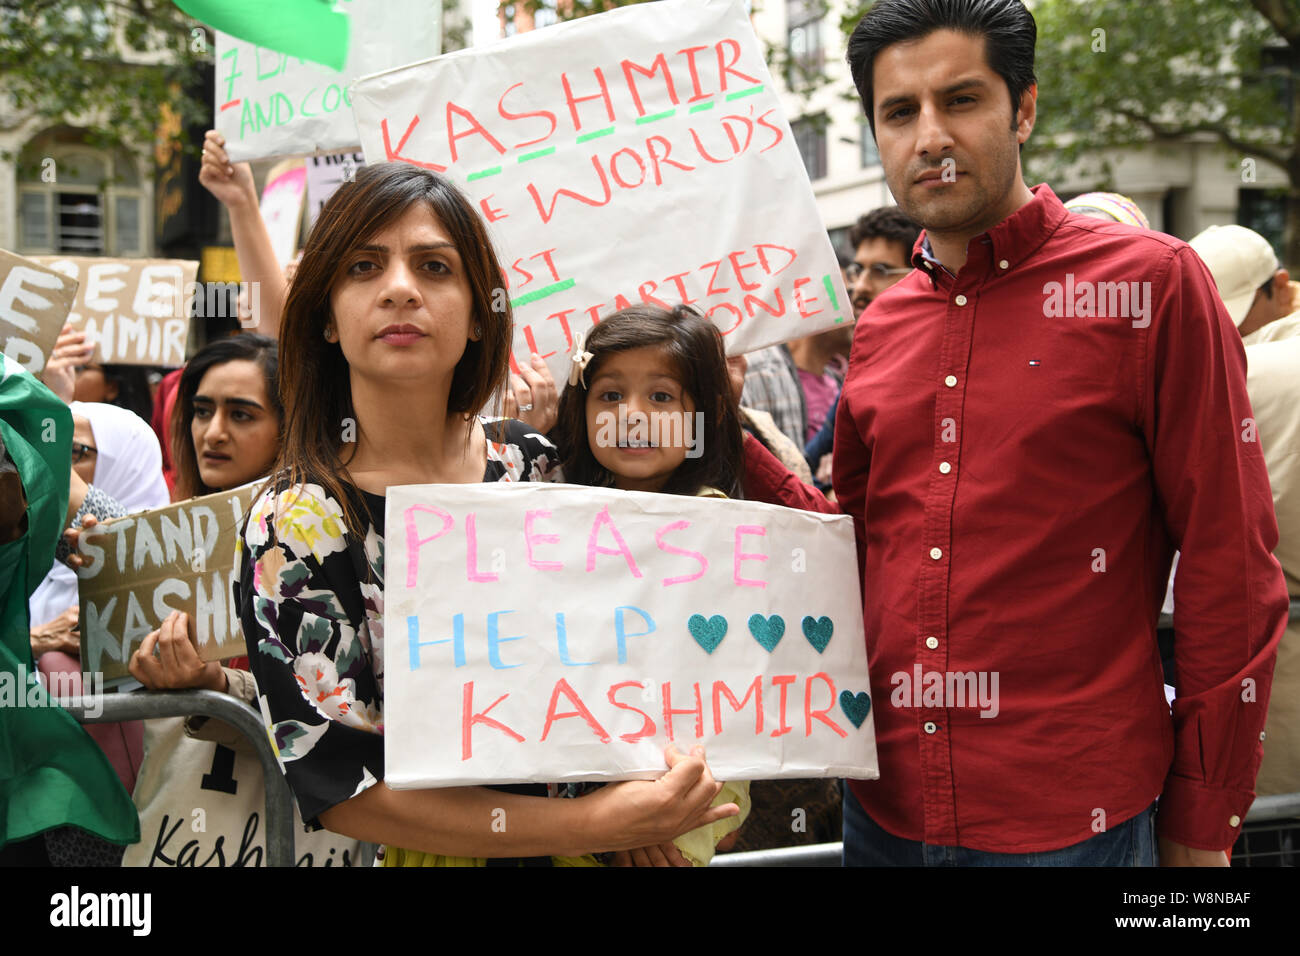 London, UK. 10th Aug, 2019. Hundreds Kashmiris protest India terrorists and Indian army occupation revoke article 370 and 35A. The same language Israel apartheid in Palestine outside India Embassy London, THow can a human being harm this beautiful children? on 20 August 2019, UK. Credit: Picture Capital/Alamy Live News Stock Photo